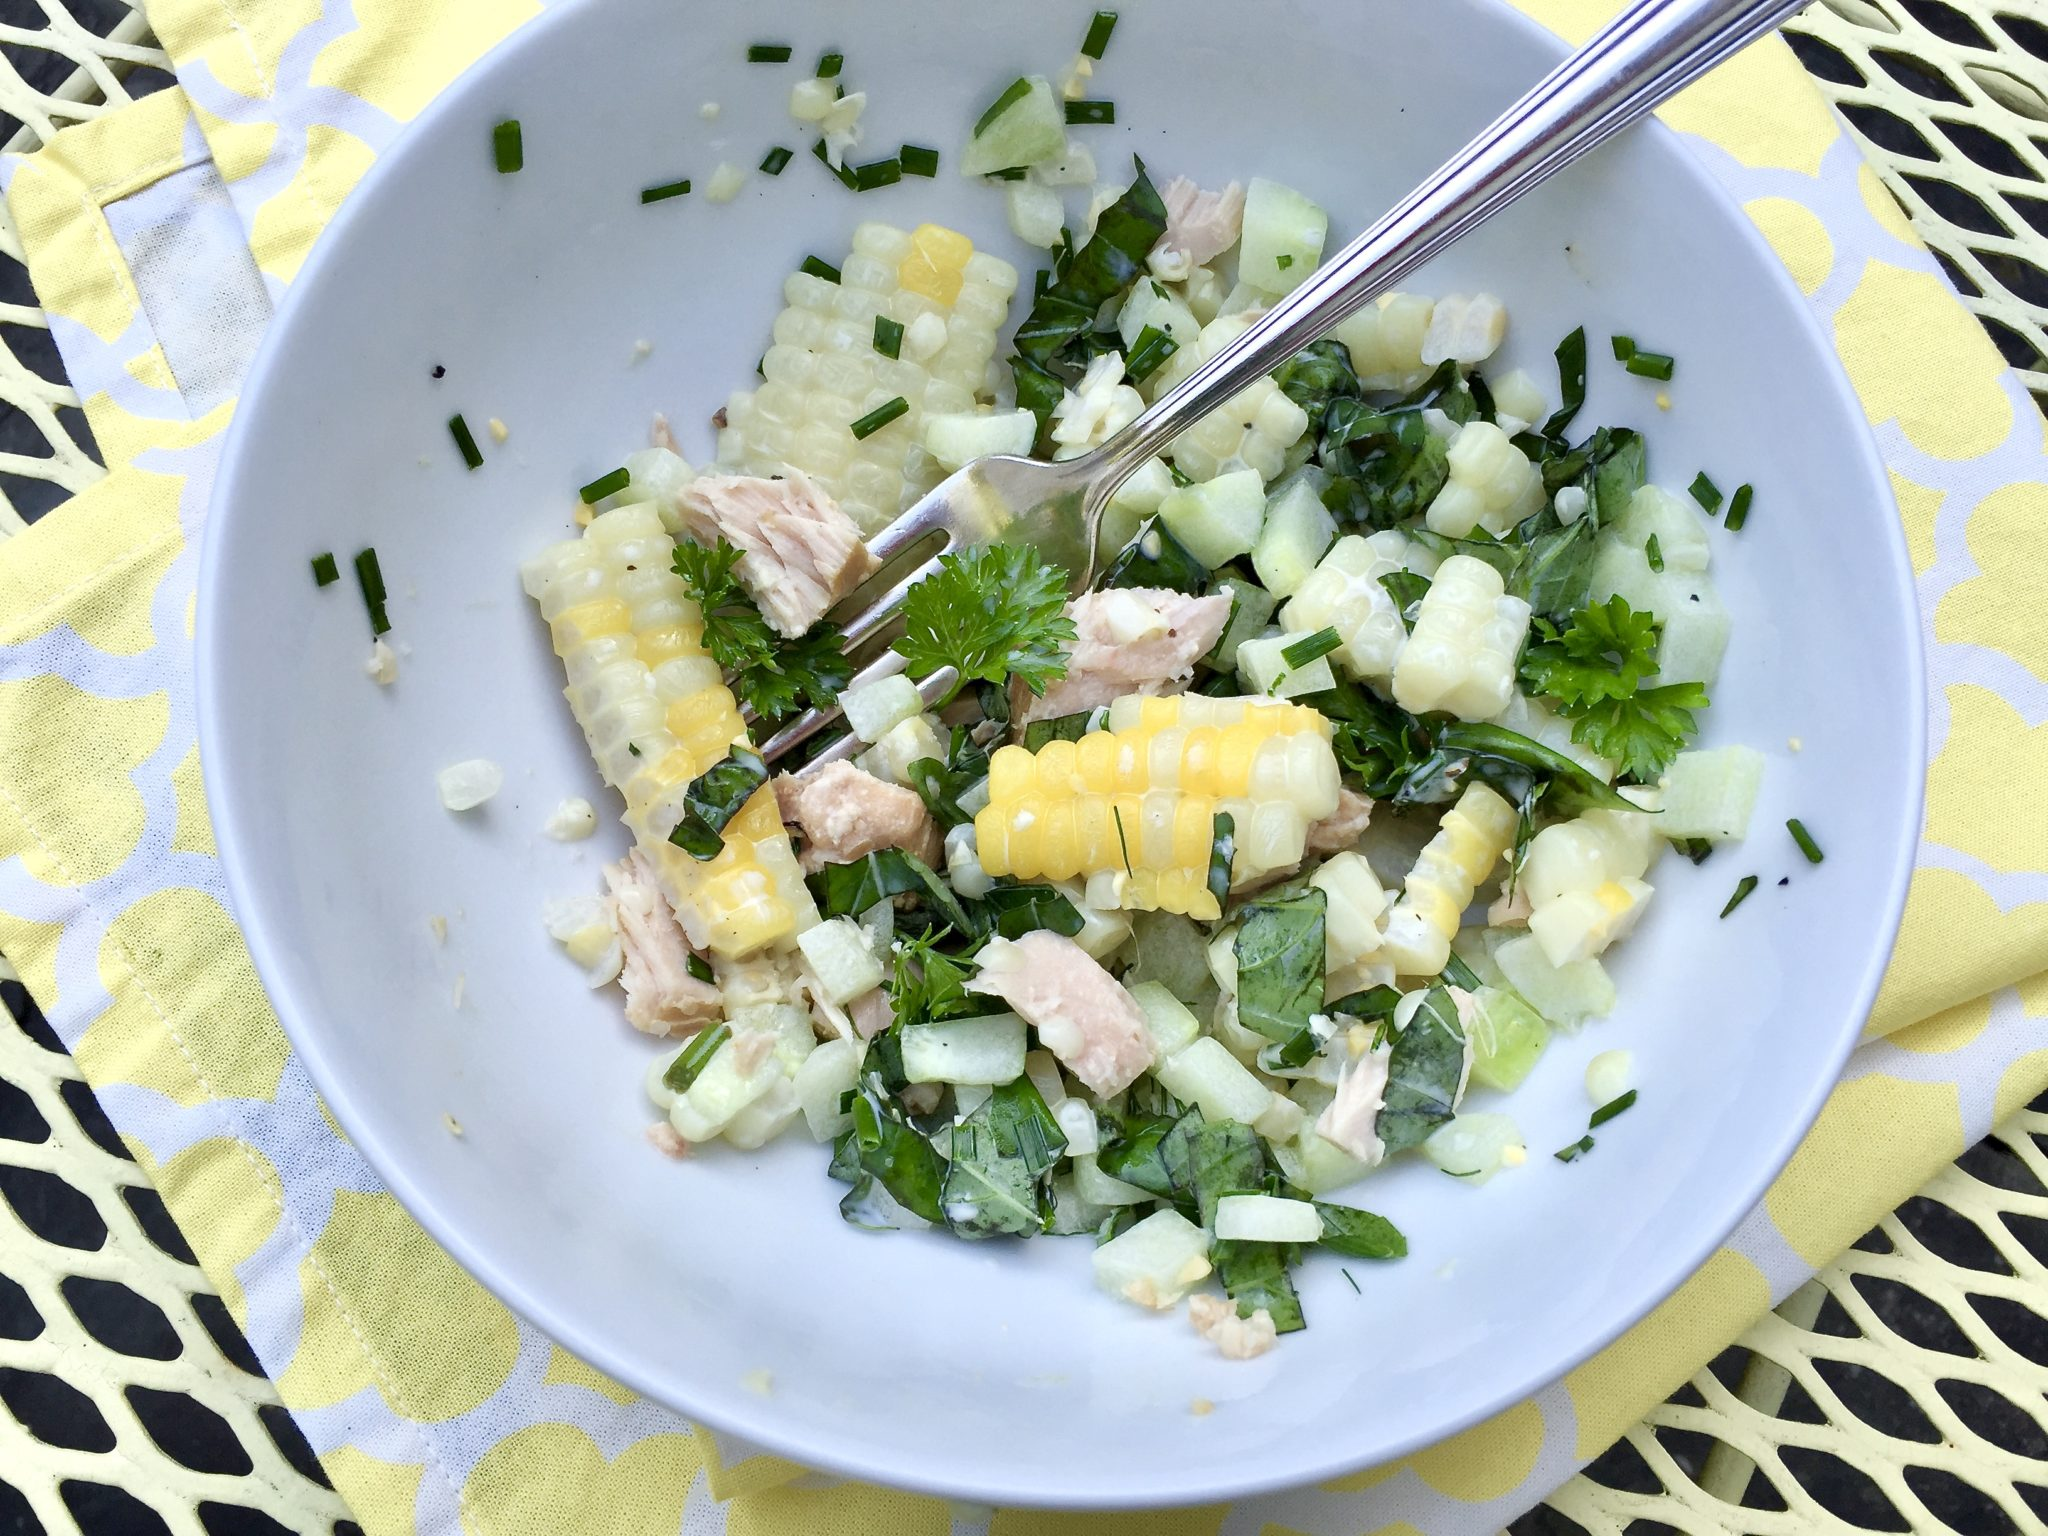 Quite possibly the easiest summer salad with the biggest reward, this fresh-tasting bowl comes together in minutes and is sure to become a crowd favorite!